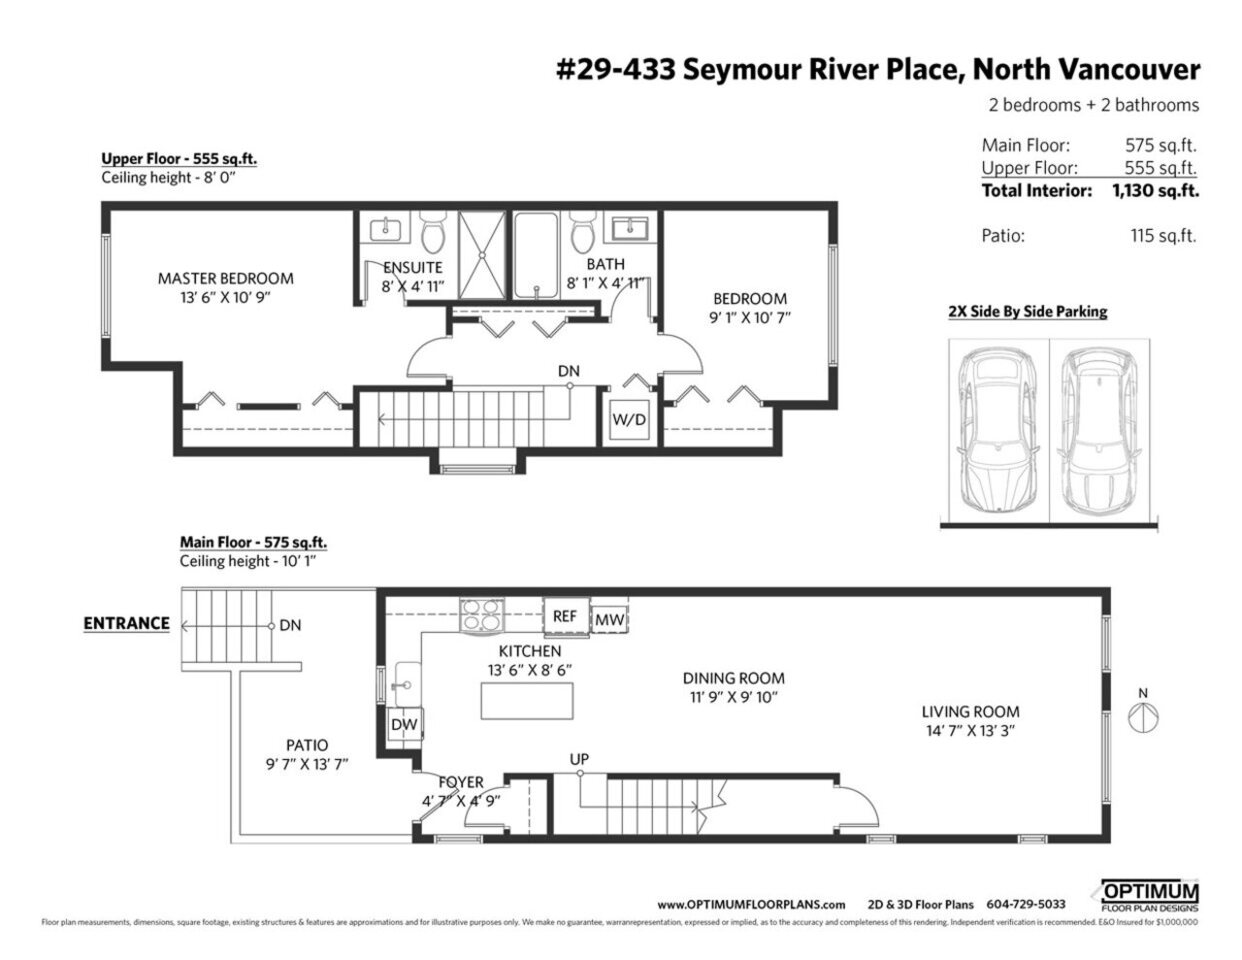 433-seymour-river-place-seymour-nv-north-vancouver-23 at 29 - 433 Seymour River Place, Seymour NV, North Vancouver